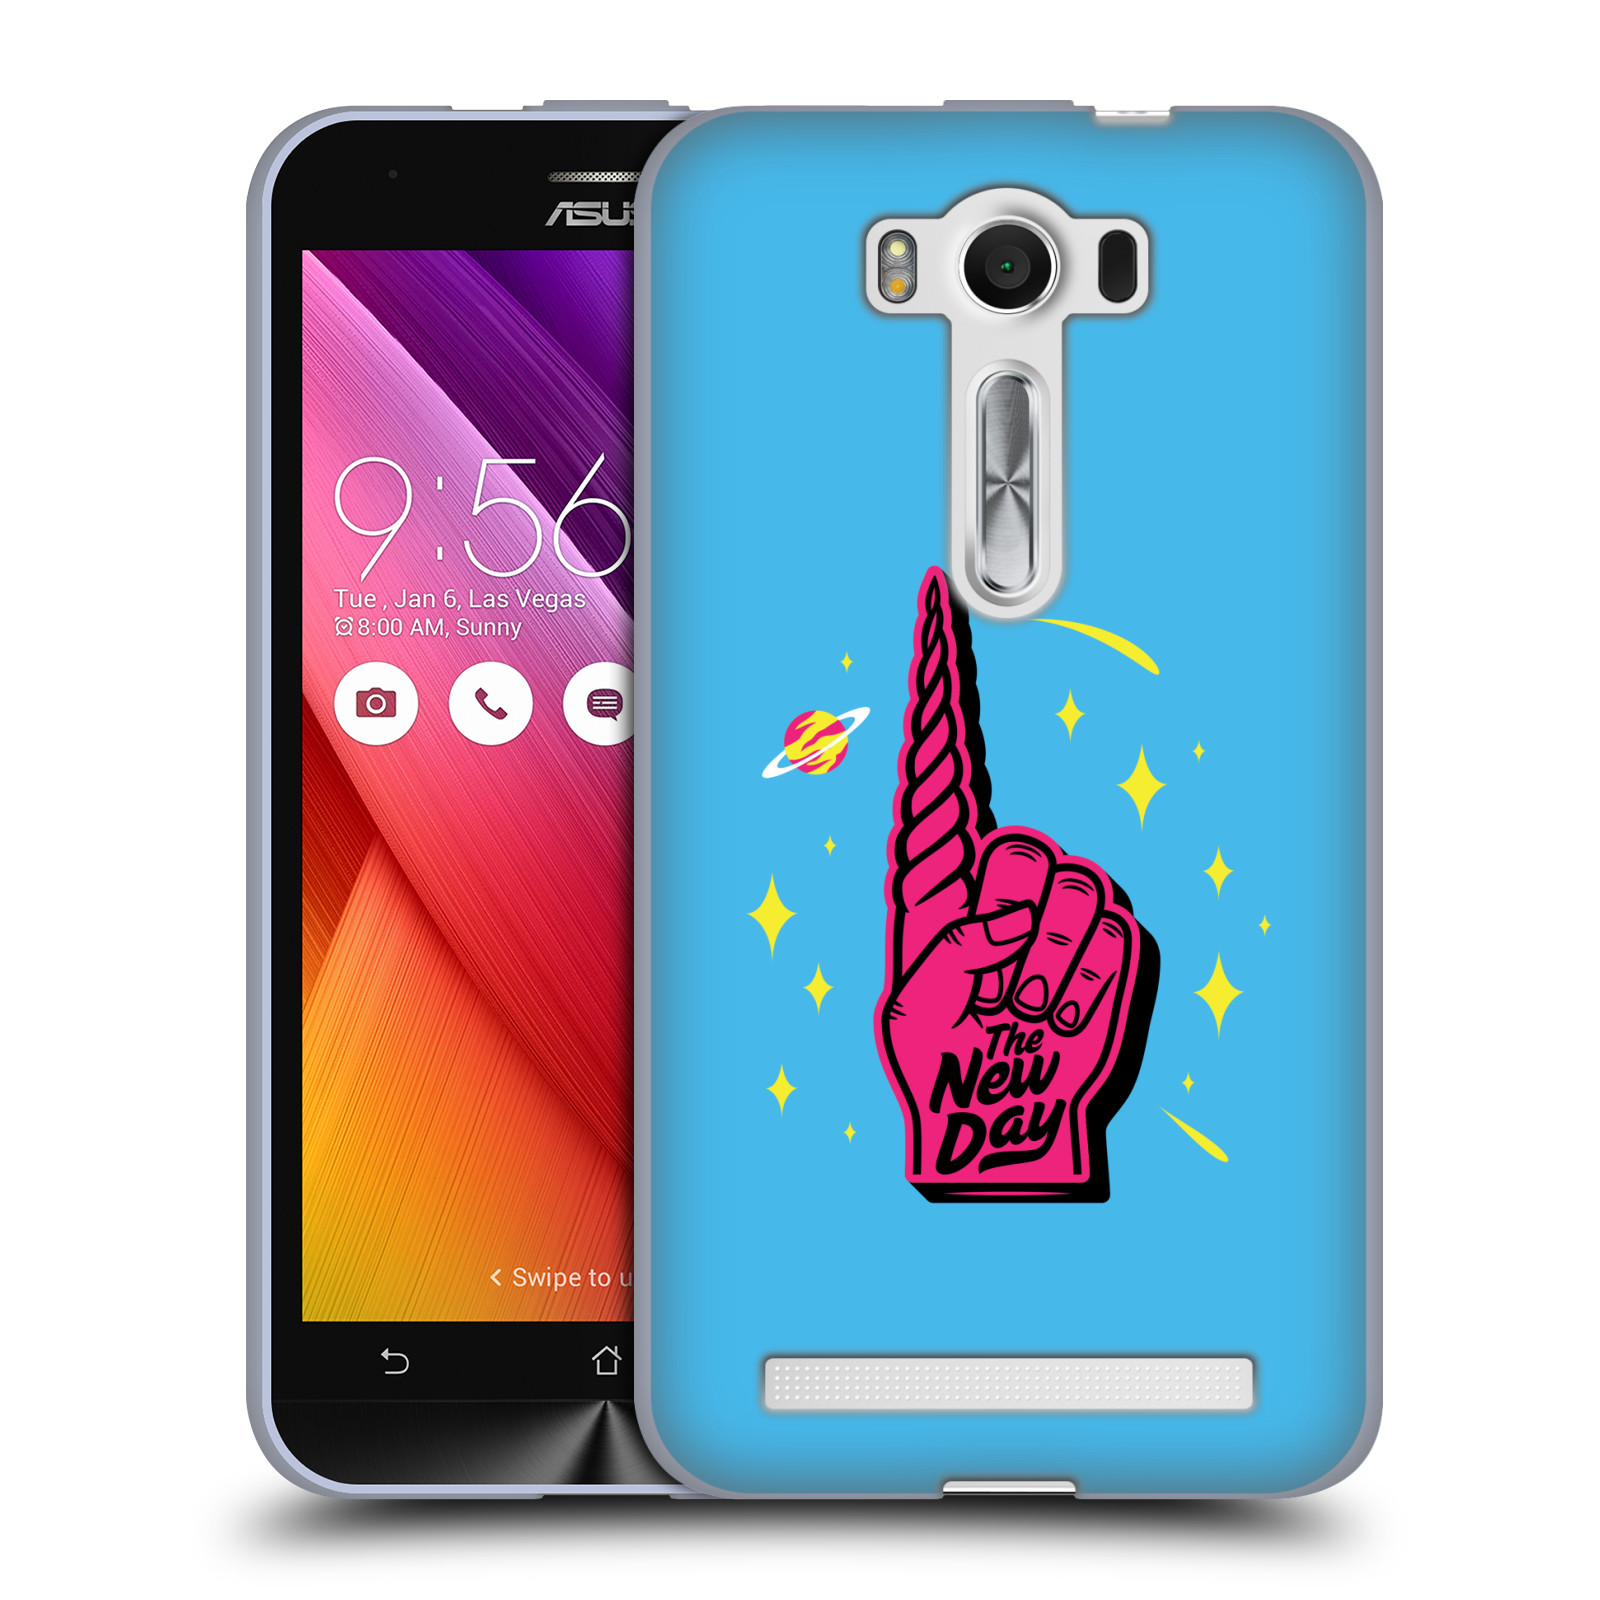 OFFICIAL WWE THE NEW DAY SOFT GEL CASE FOR ASUS ZENFONE PHONES